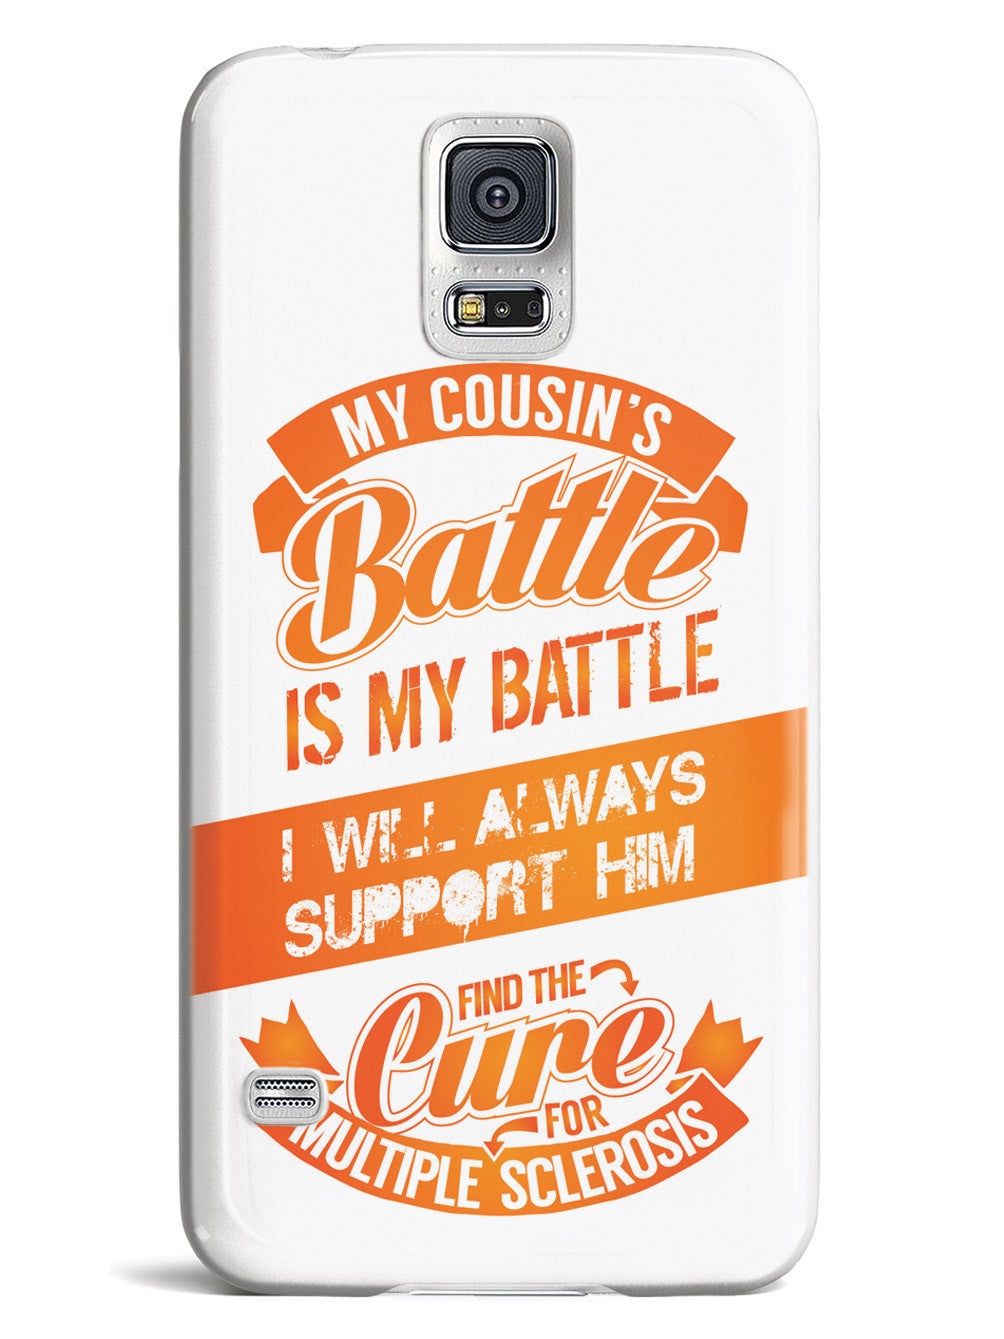 My Cousin's (HIS) Battle - Multiple Sclerosis Awareness Case